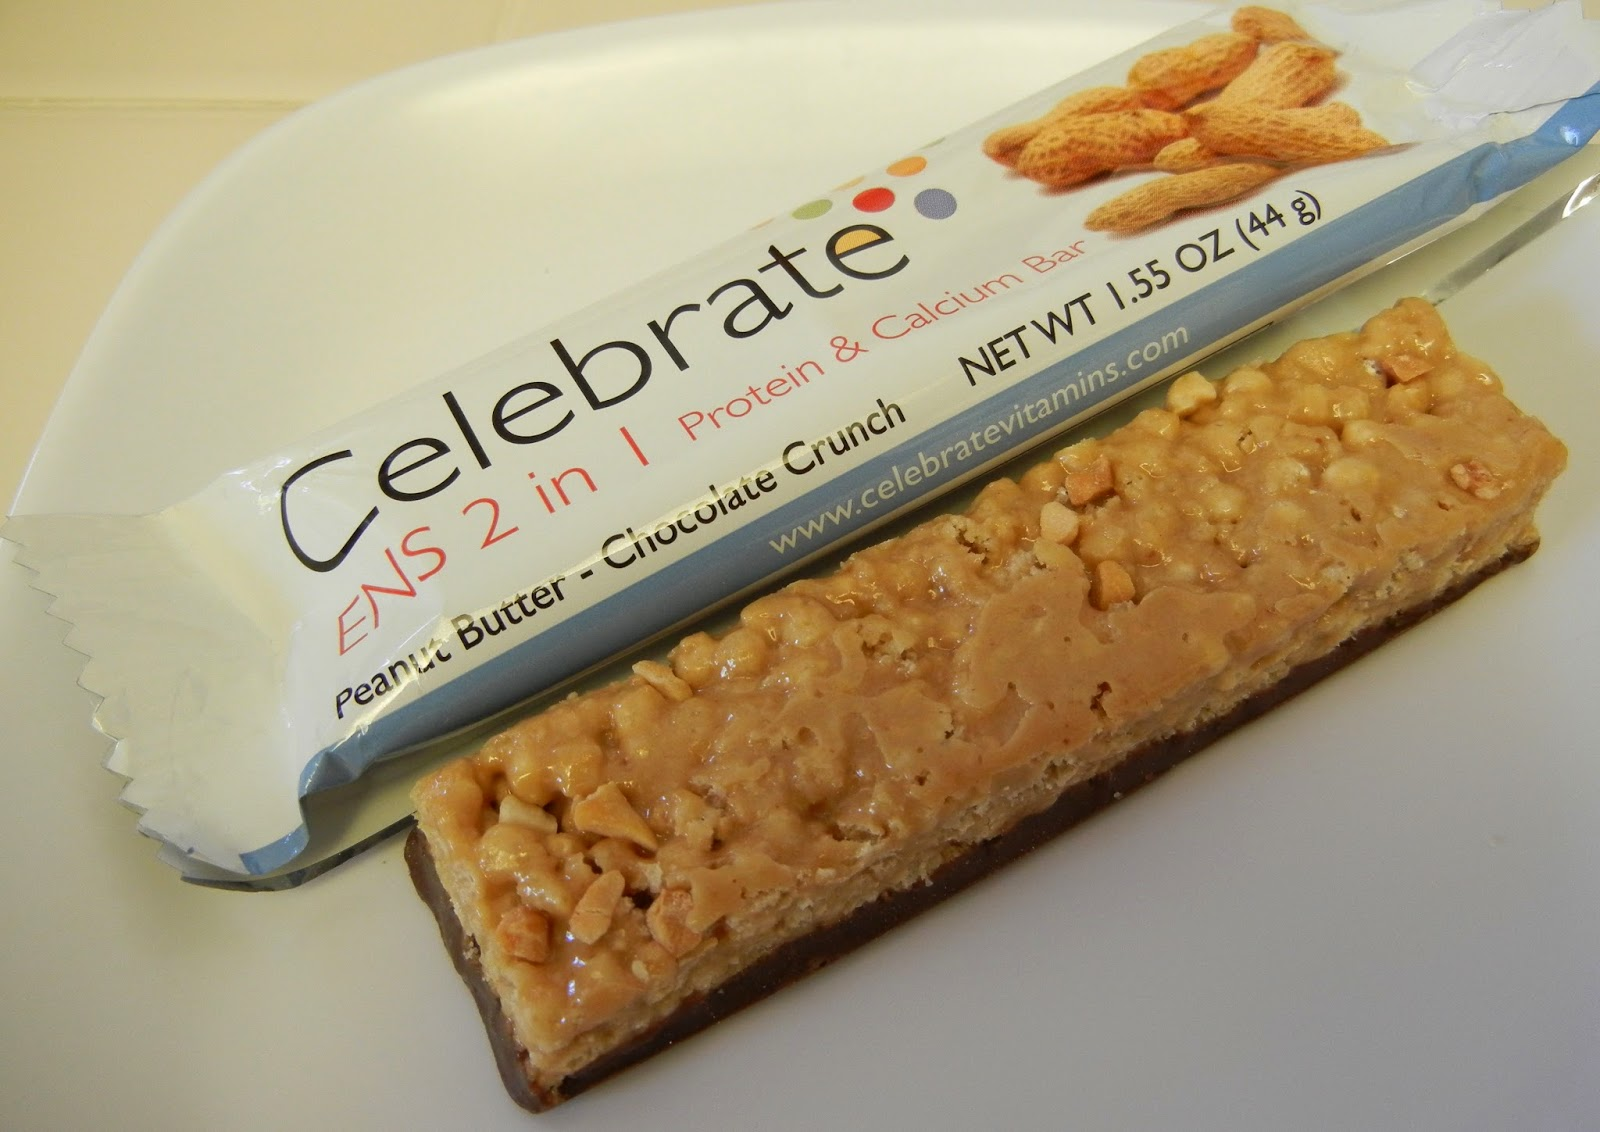 Celebrate+Vitamins+ENS+2+in+1+Protein+and+Calcium+Bar+Peanut+Butter+Chocolate+Crunch+Eggface Weight Loss Recipes Eggface and Celebrate Vitamins ENS 2 in 1 Protein Bar Giveaway